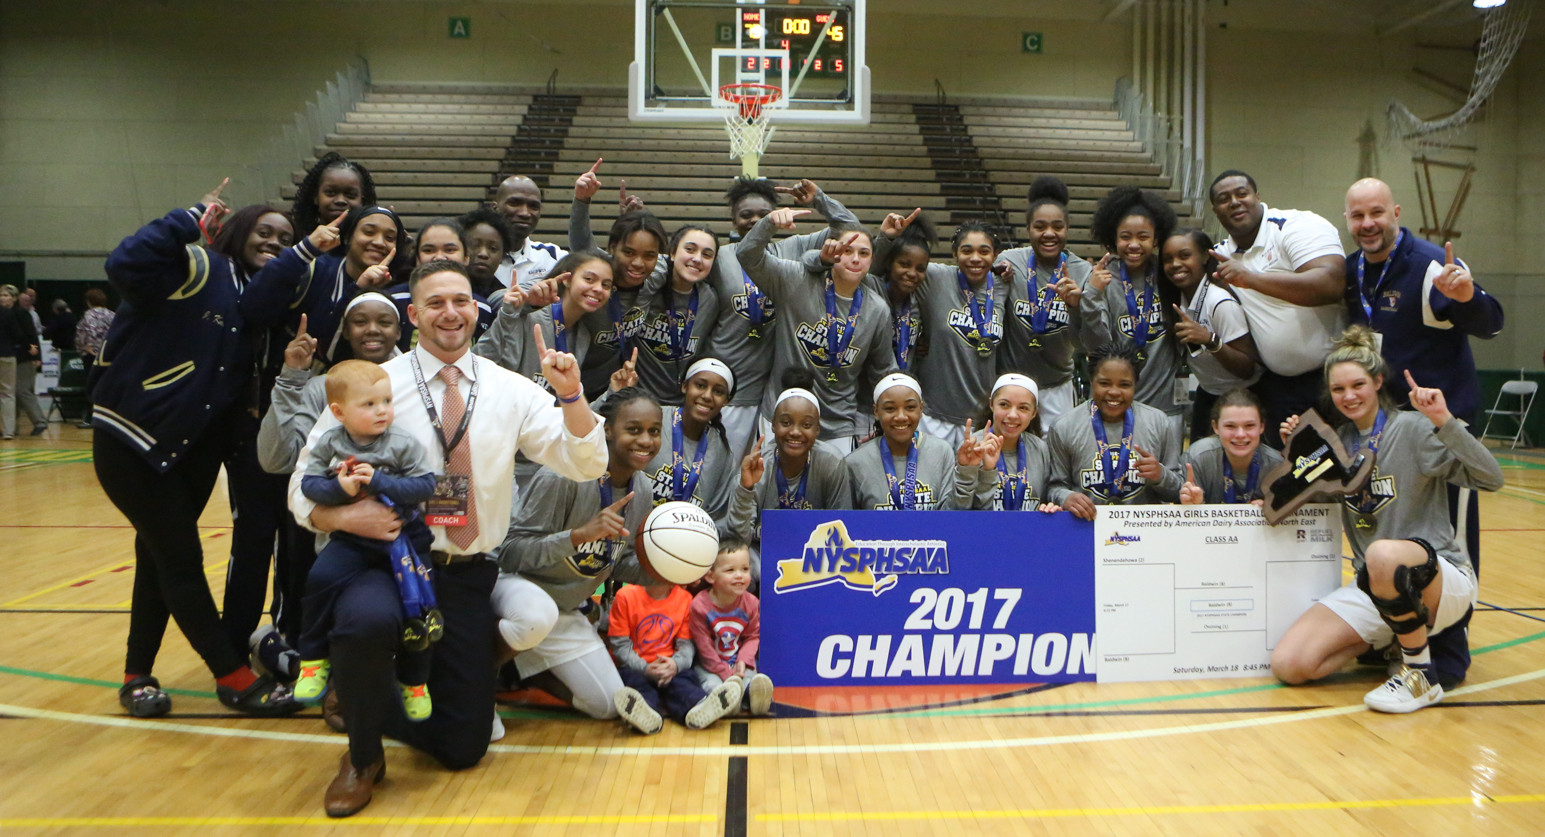 The Lady Bruins roared past Ossining, 73-45, to win the NYS Class AA girls' basketball title at Hudson Valley Community College in Troy on Saturday night.